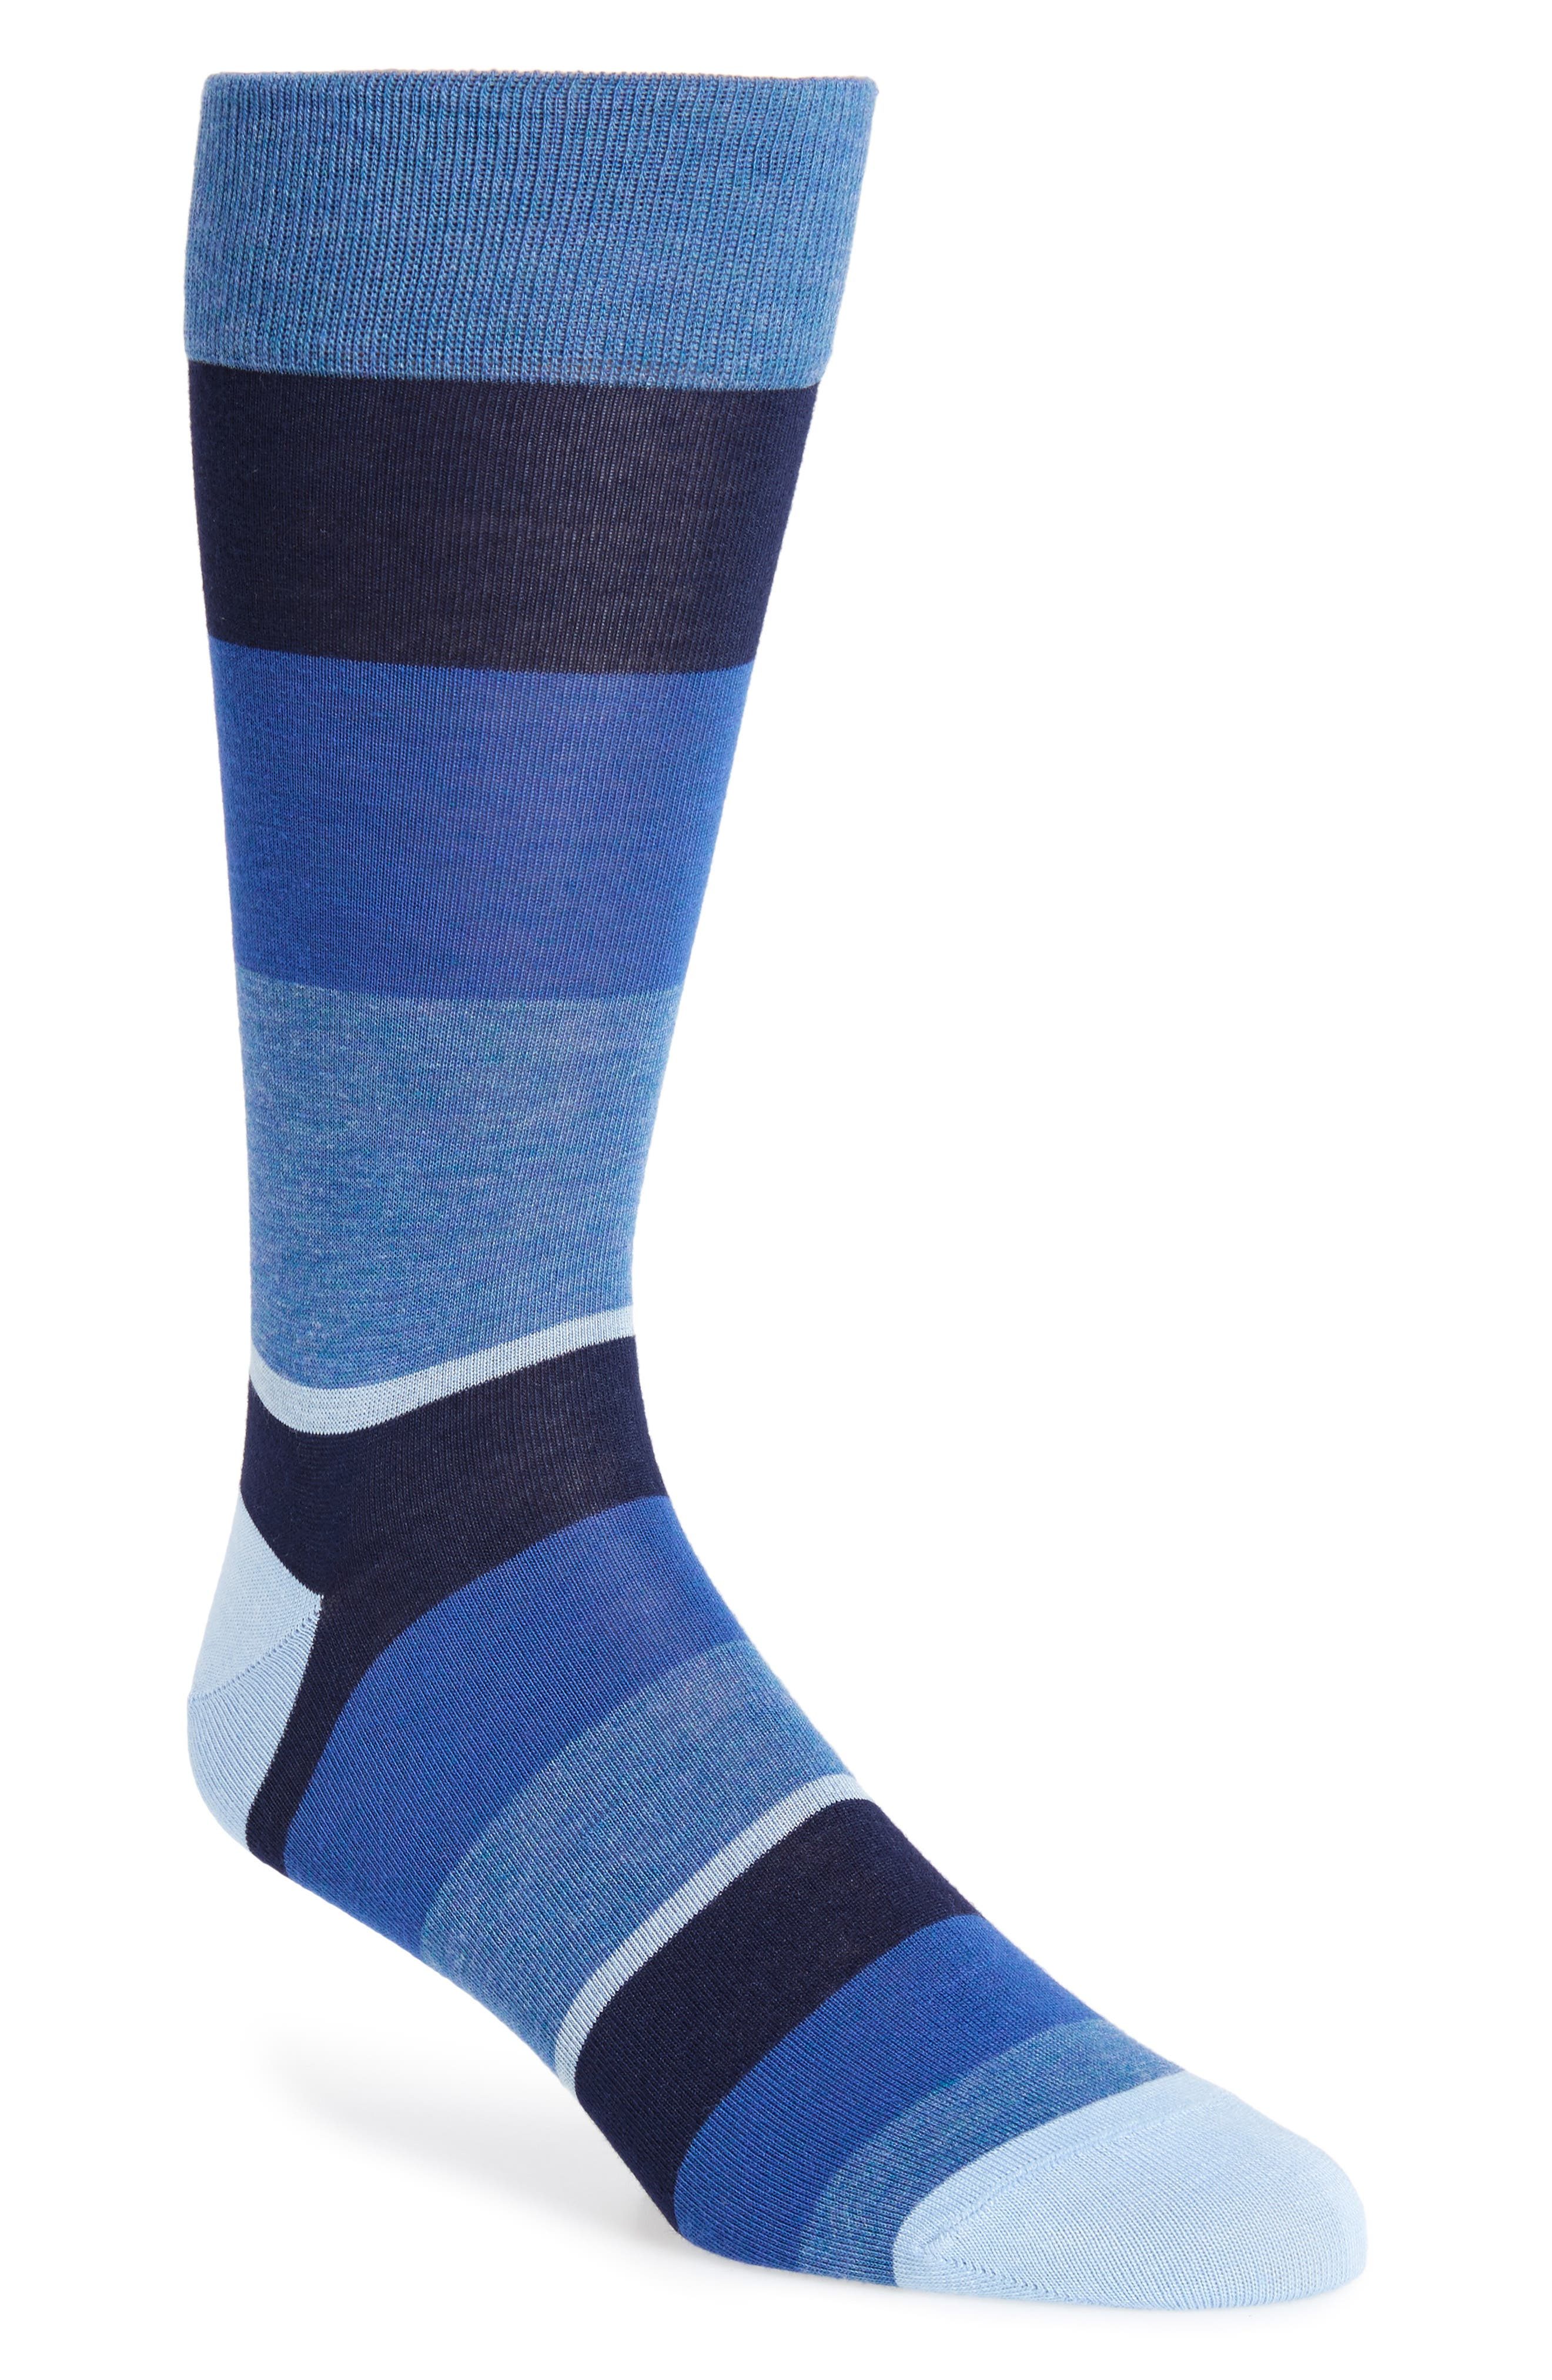 Colorblock Socks,                         Main,                         color, Navy